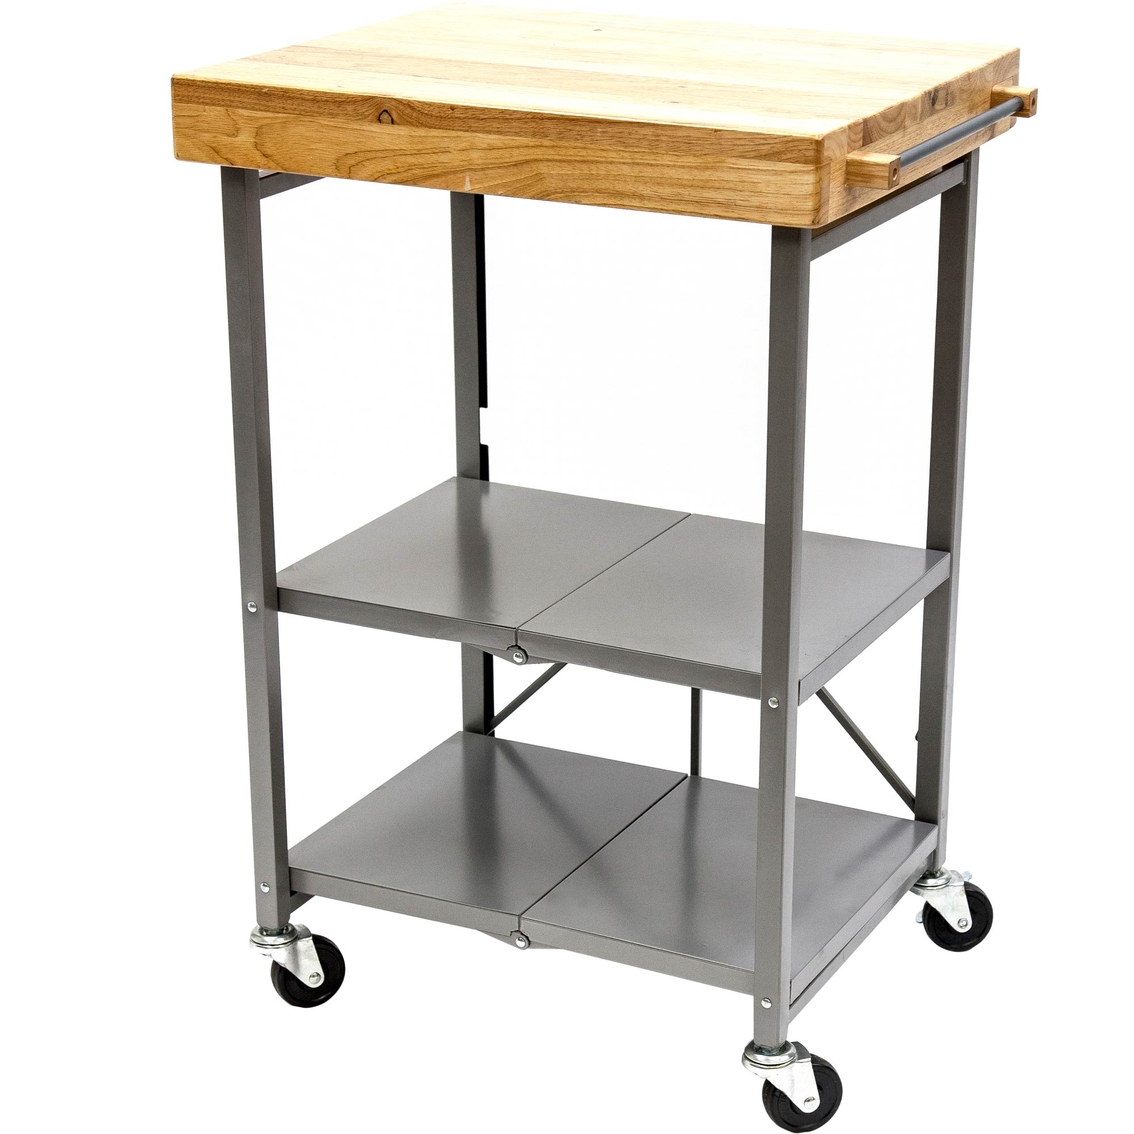 kitchen butcher block cart origami origami cart origami 36 high folding kitchen island qvc cart butcher block from